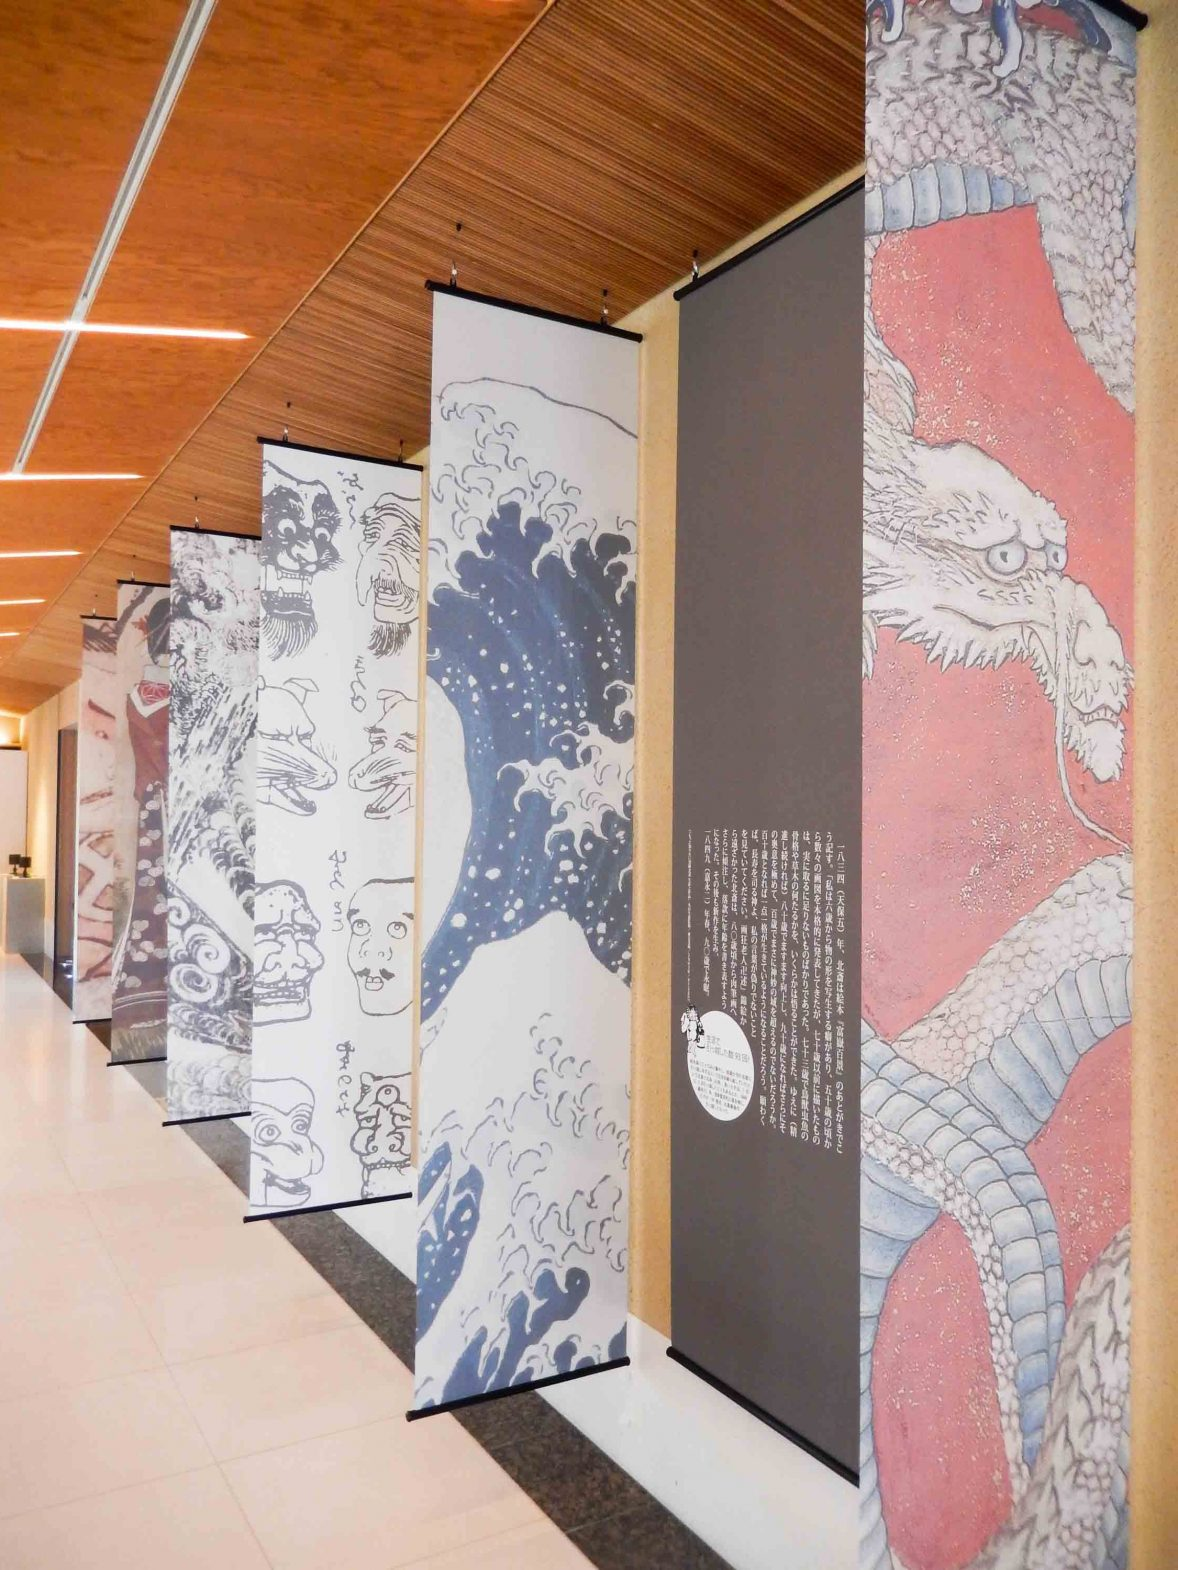 The Hokusai Museum pays homage to the ukiyo-e woodblock print artist who lived out the last years of his life here in Obuse, Japan.